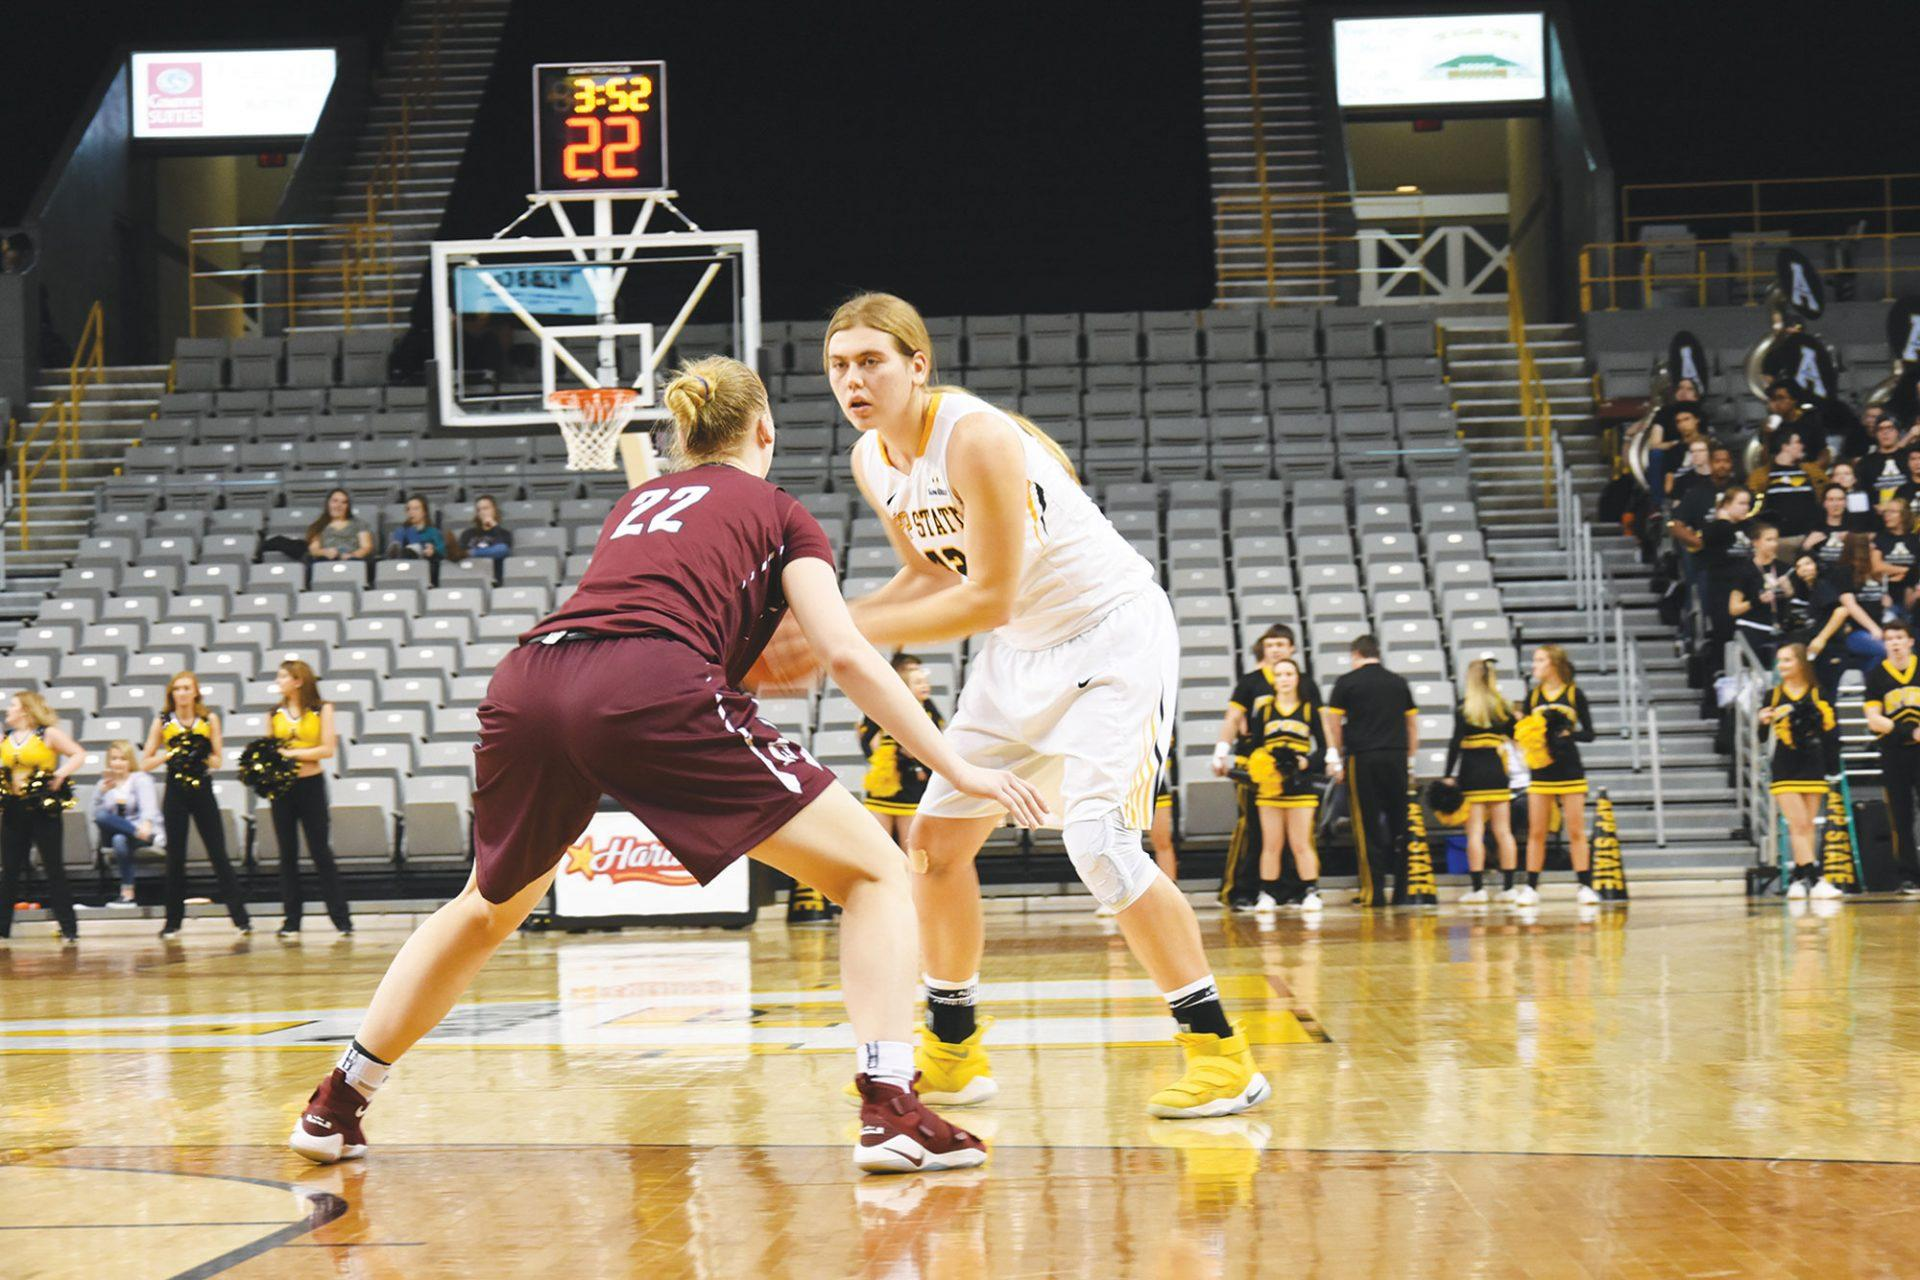 Bayley Plummer looking for a teammate to catch the basketball. The Mountaineers lost against the Trojans 52 to 40.